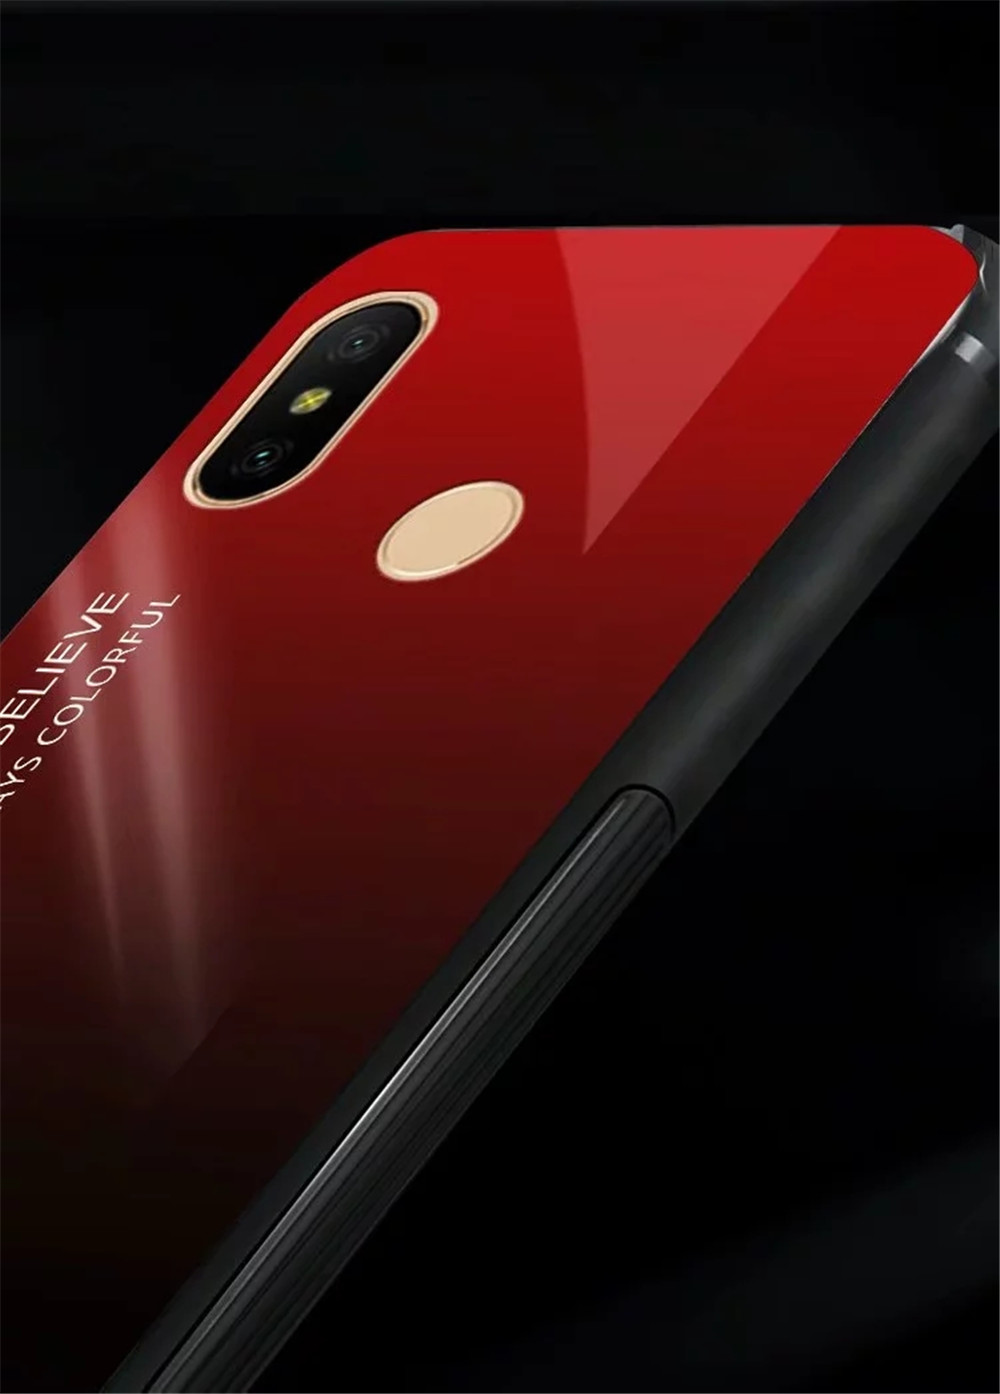 Have An Inquiring Mind Clear View Smart Mirror Phone Cases For Redmi Note 6 Pro Case 6a 6 Pro Flip Cover For Xiaomi A2 Mi 8 Lite Pro Mix 2 3 Max 3 Case Colours Are Striking Clothing, Shoes & Accessories